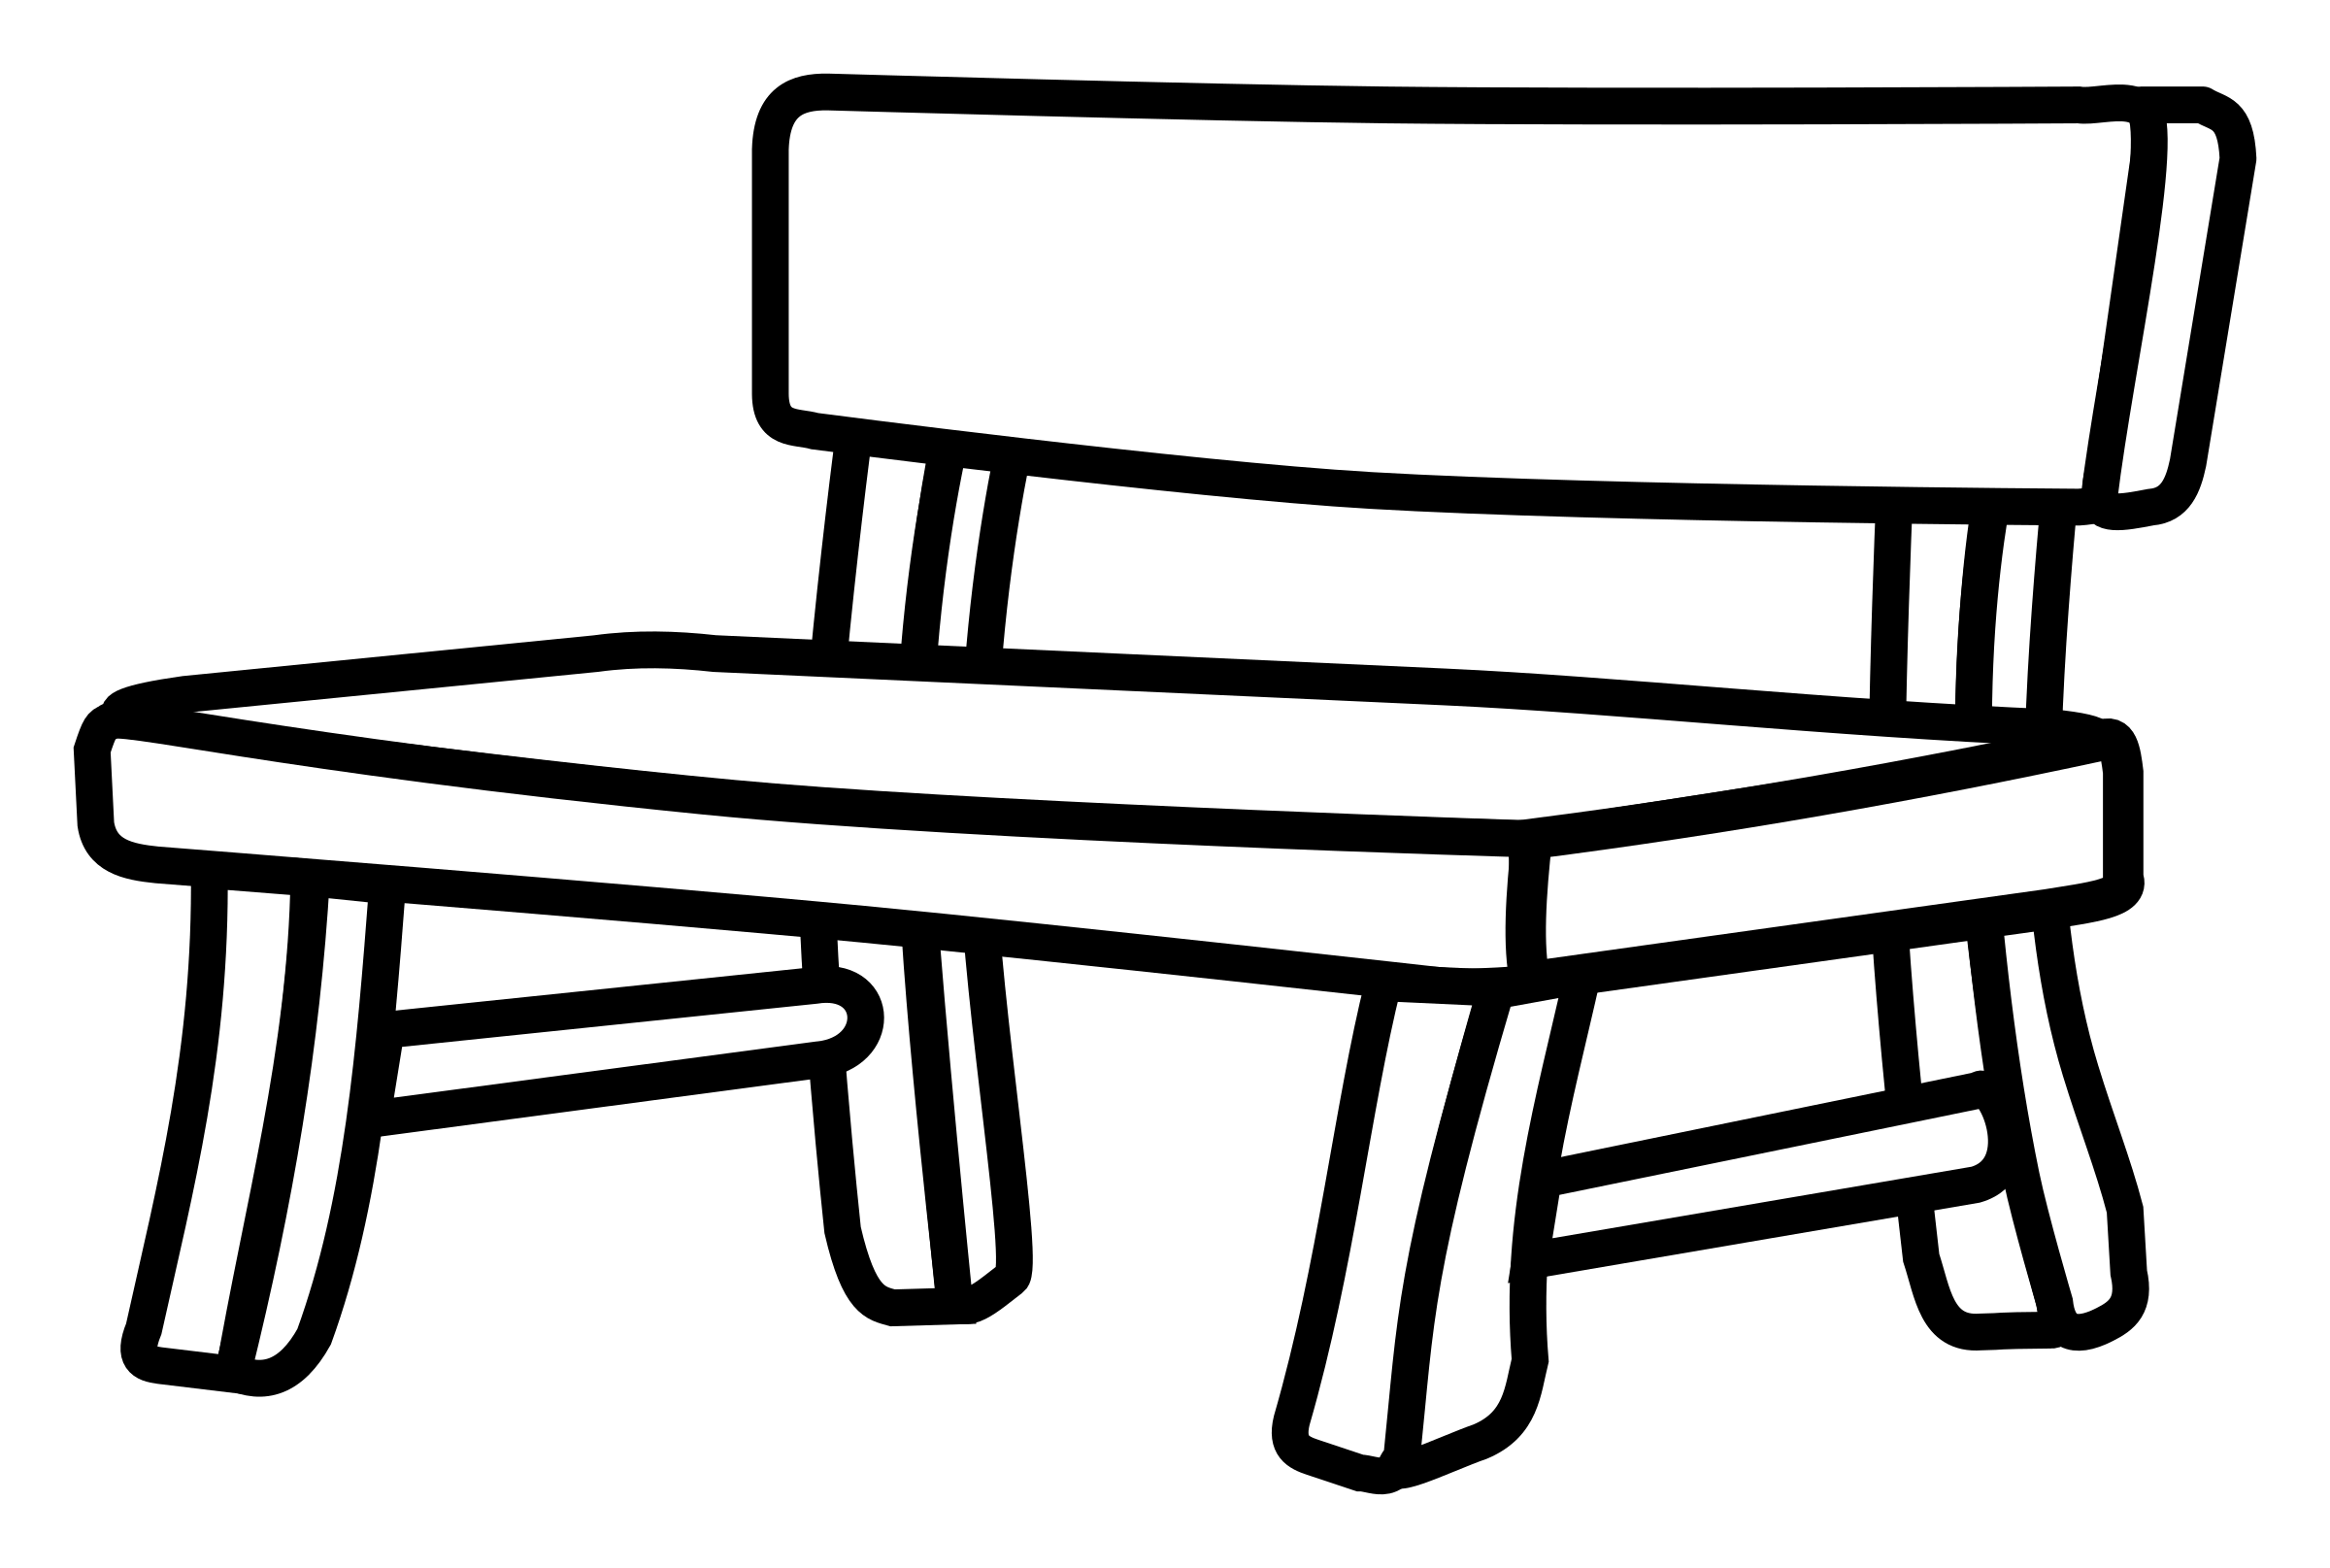 Free Bench Cliparts, Download Free Clip Art, Free Clip Art